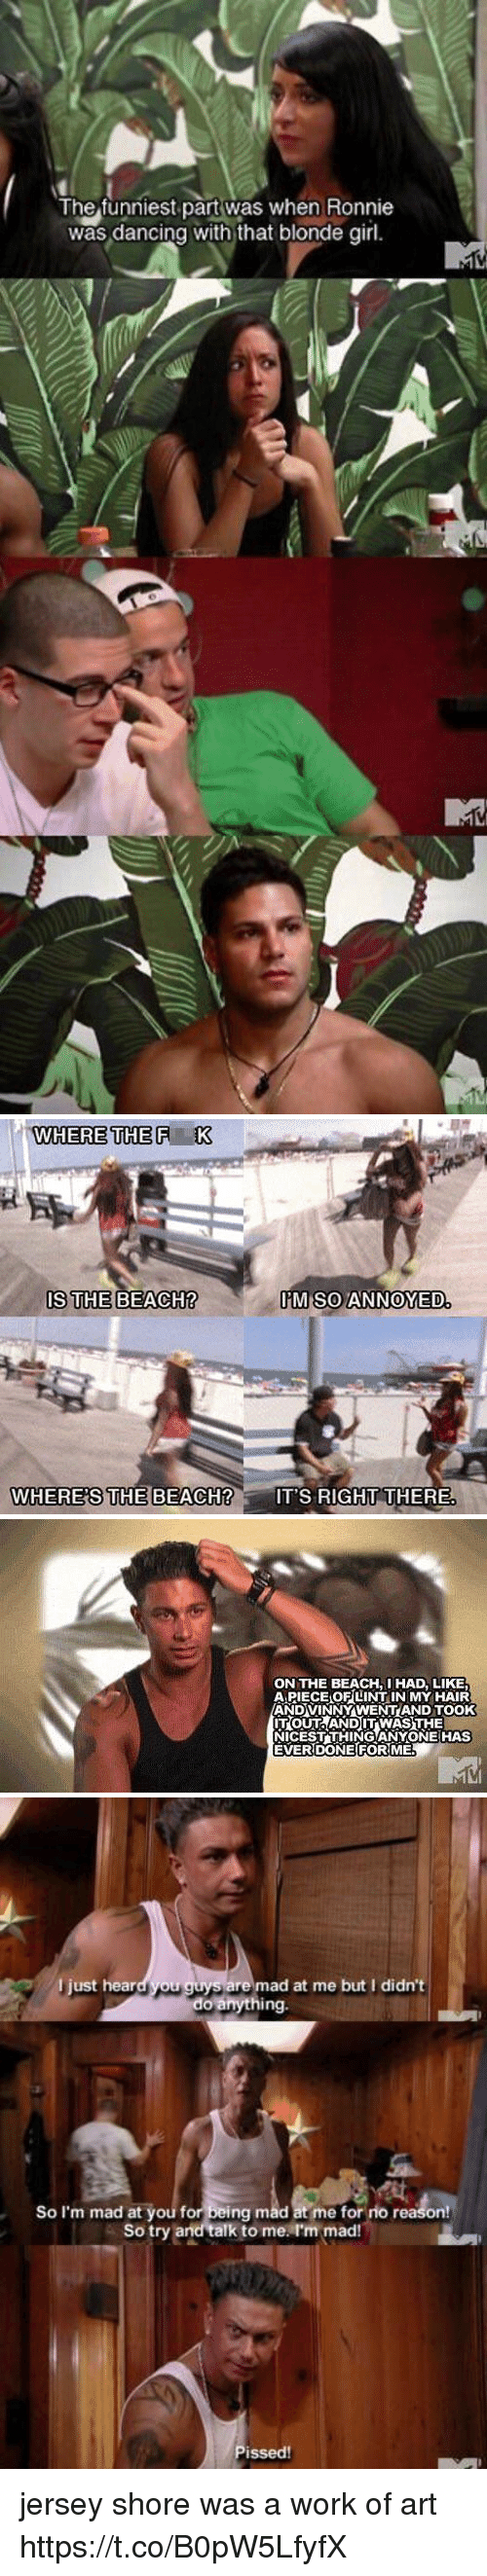 blonde girl: The funniest part was when Ronnie  was dancing with that blonde girl   WHERE THE F K  IS THE BEACH?  M SOANNOYED  WHERE'S  CH?IT'S RIGHT THERE   ON THE BEACH, HAD, LIKE  APIECEO팃LINT IN MY HAIR  ANDVINNÝ WENTAND TOOK  ITOUTAANDITWAS THE  NICESTTHINGANYONE HAS  EVERDONE FORIME   l just heard you guys are mad at me but I didn't  do anything.  So I'm mad at you for being mad at me for rio reason!  So try and talk to me I'm mad!  issed! jersey shore was a work of art https://t.co/B0pW5LfyfX